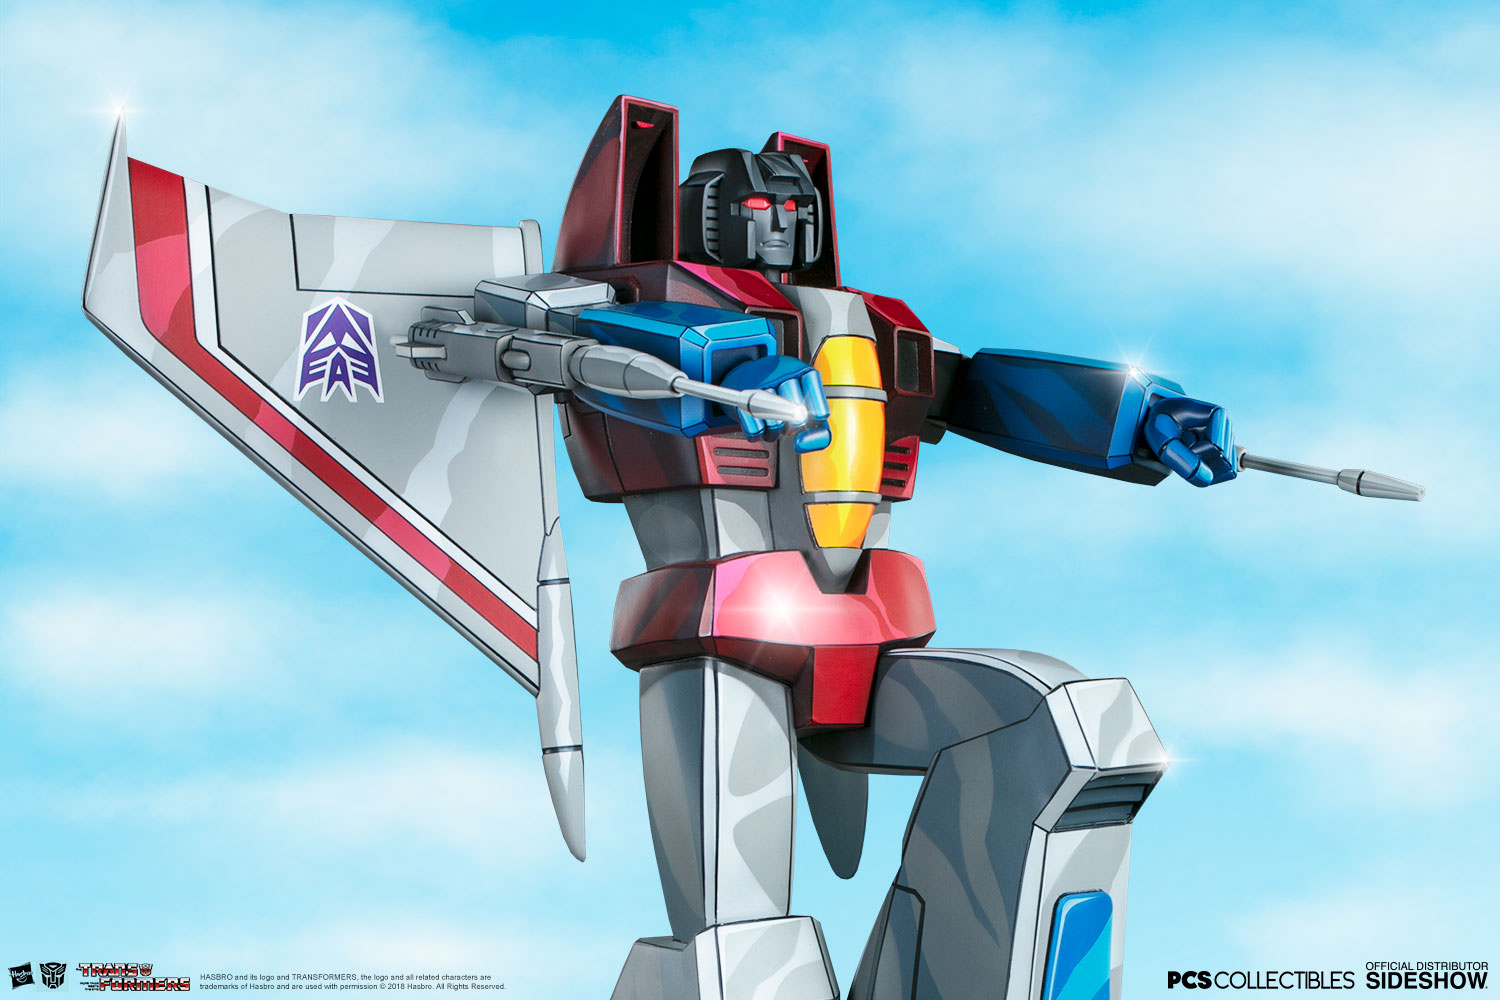 Starscream – G1 Statue by Pop Culture Shock (Museum Scale)